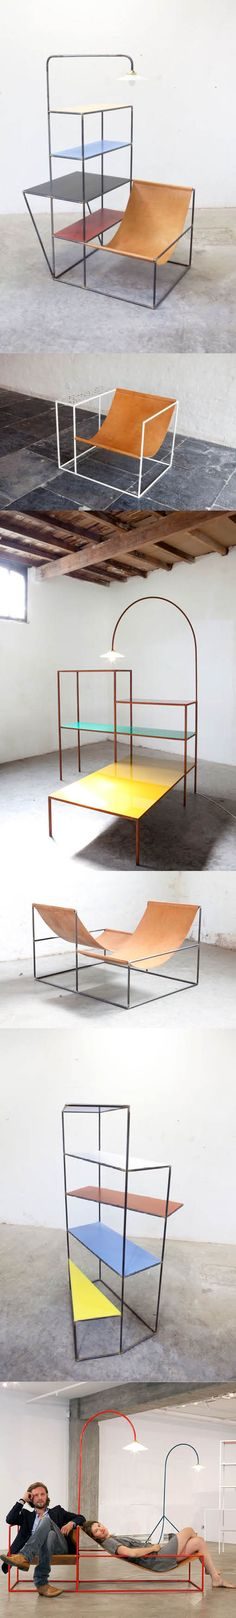 Muller & van Severen / Installation S (2012) / Solo Seat Granito (2012) / Writing Desk + Low Table (2014) / Crossed double Seat (2012) / Writing Desk (2012) / Duo Seat + Lamp and Standing Lamp No.1 / Belgium / minimalism